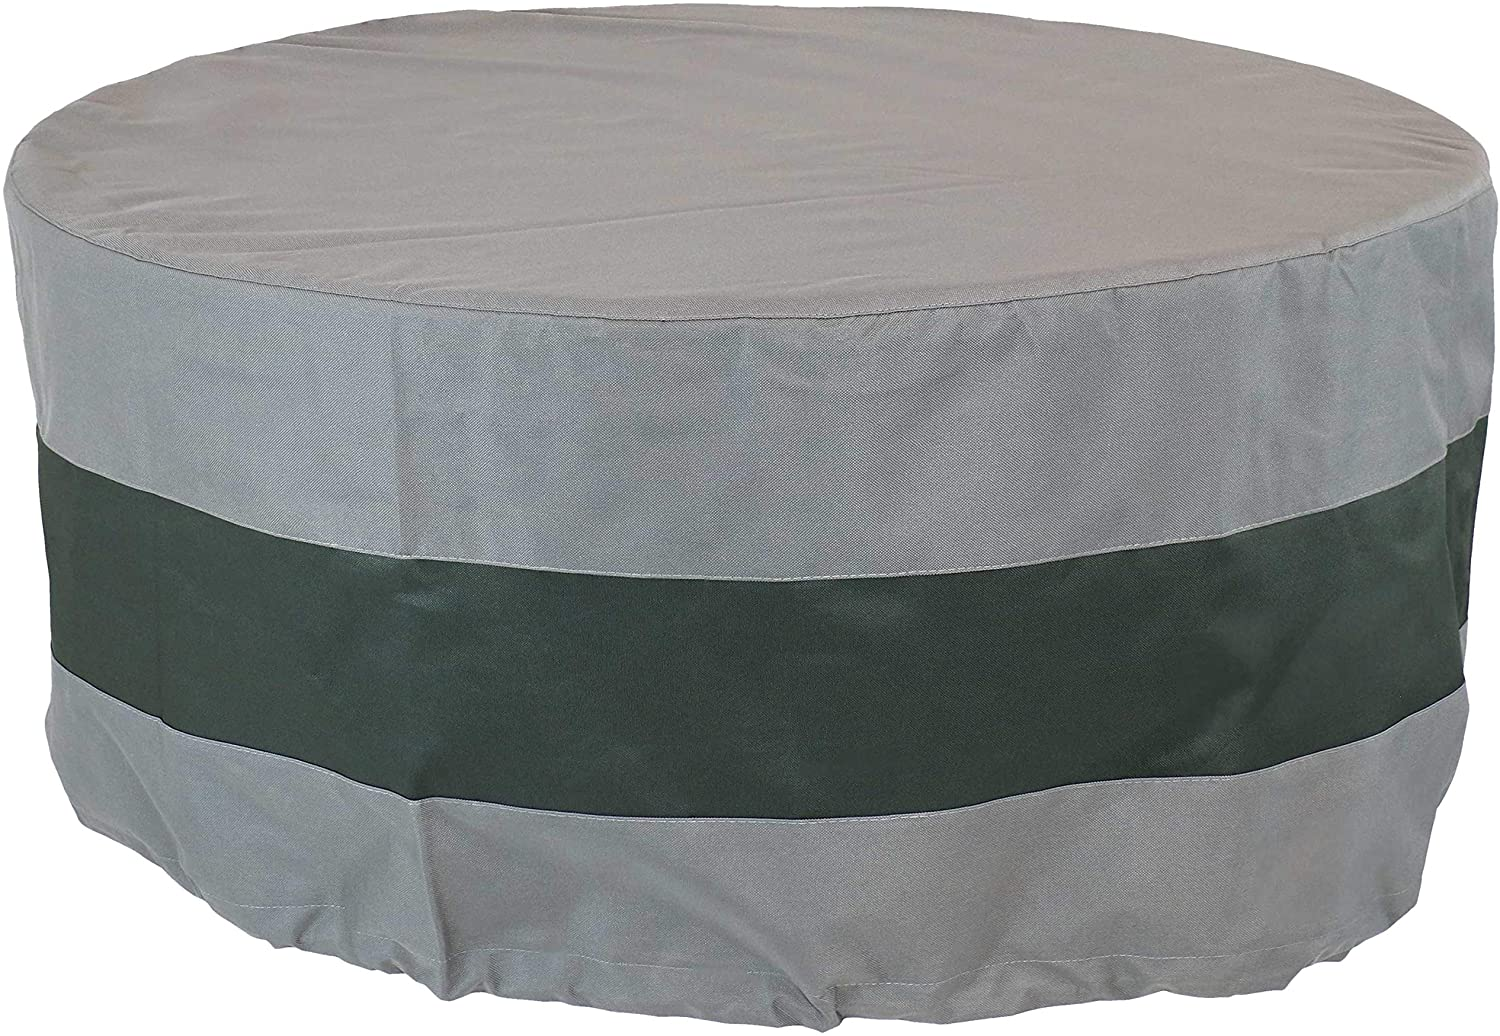 Sunnydaze Round 2-Tone Outdoor Fire Pit Cover - Gray/Green Stripe - Heavy Duty 300D Polyester Exterior Circular Winter Cover for Fire Pit - Waterproof and UV-Resistant - 60-Inch x 24-Inch